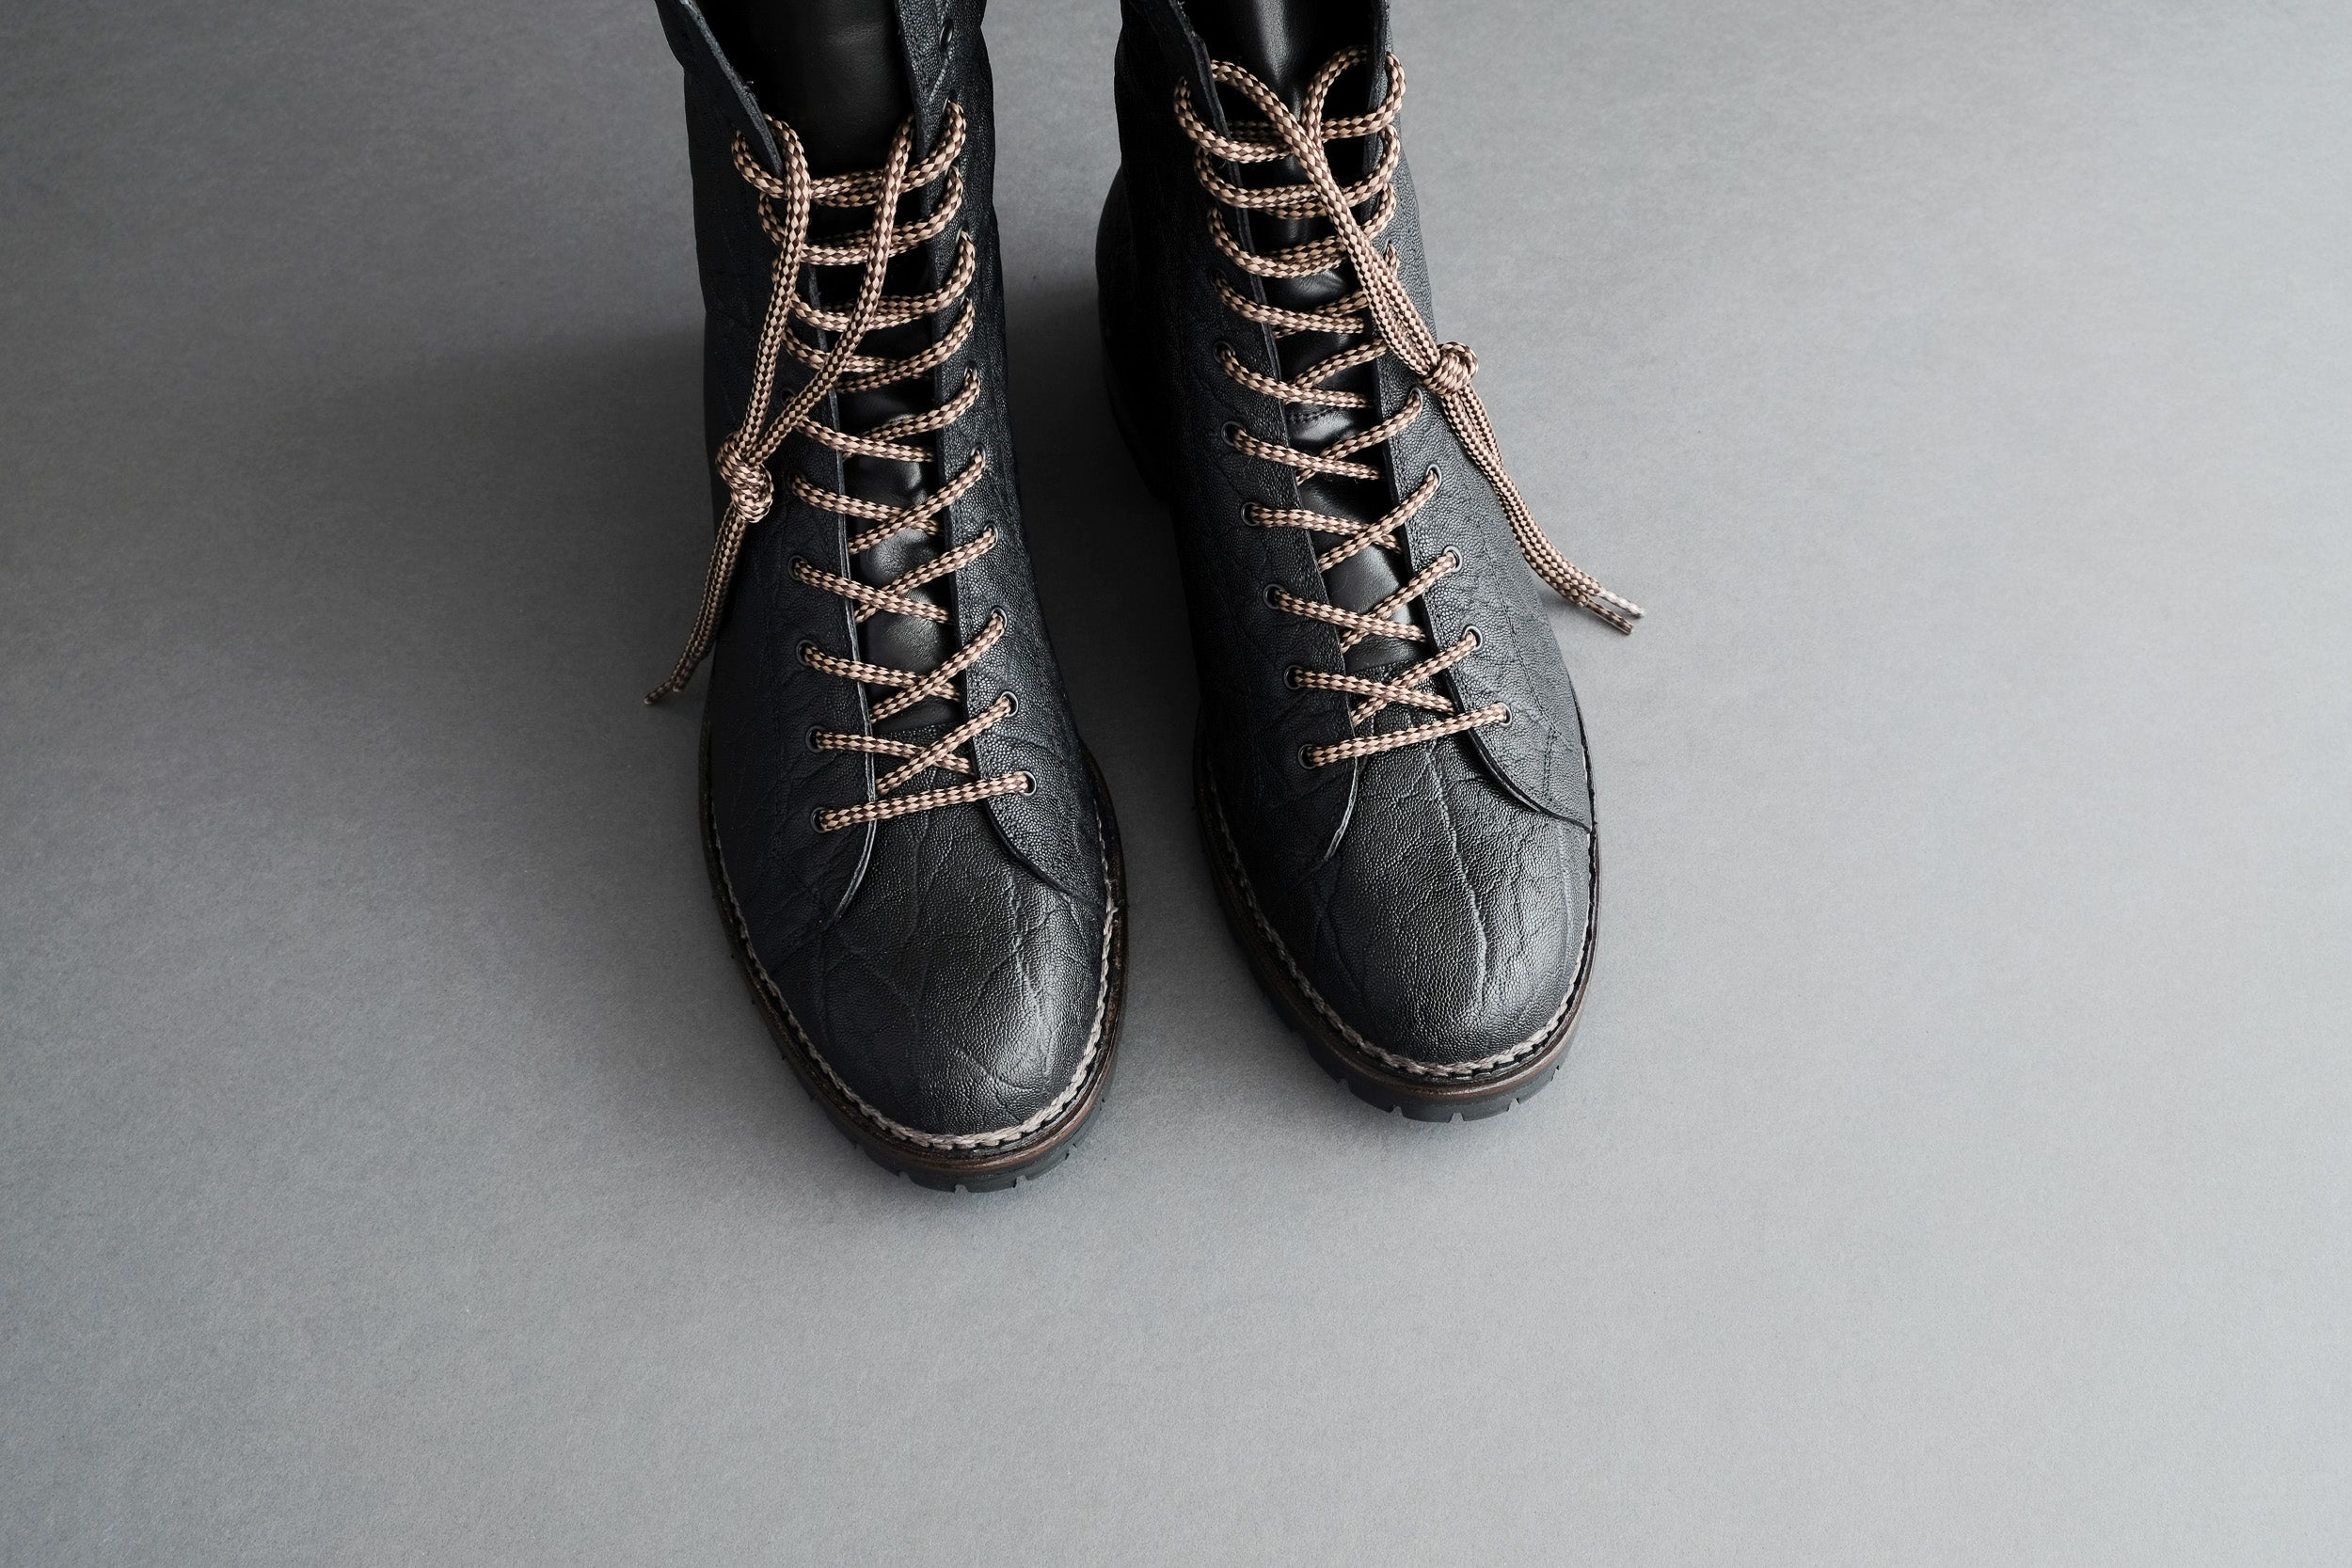 Zonkey Boot Parachute boots in elephant leather with Norvegese rubber soles